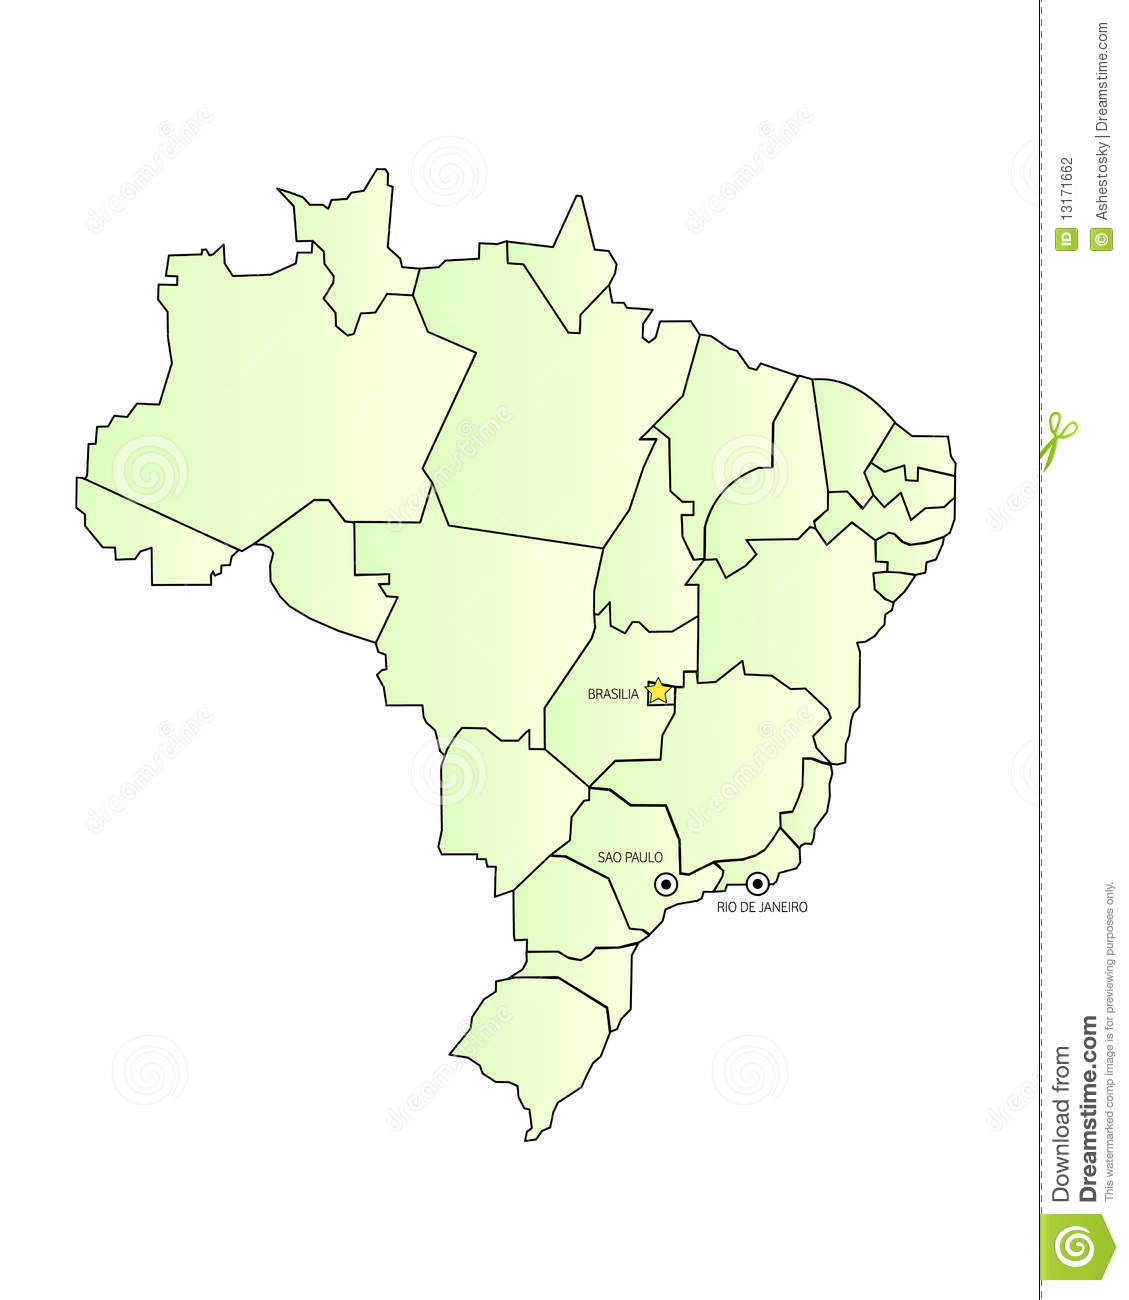 Brazil Map Outlined With Cities Stock Vector - Illustration of ...